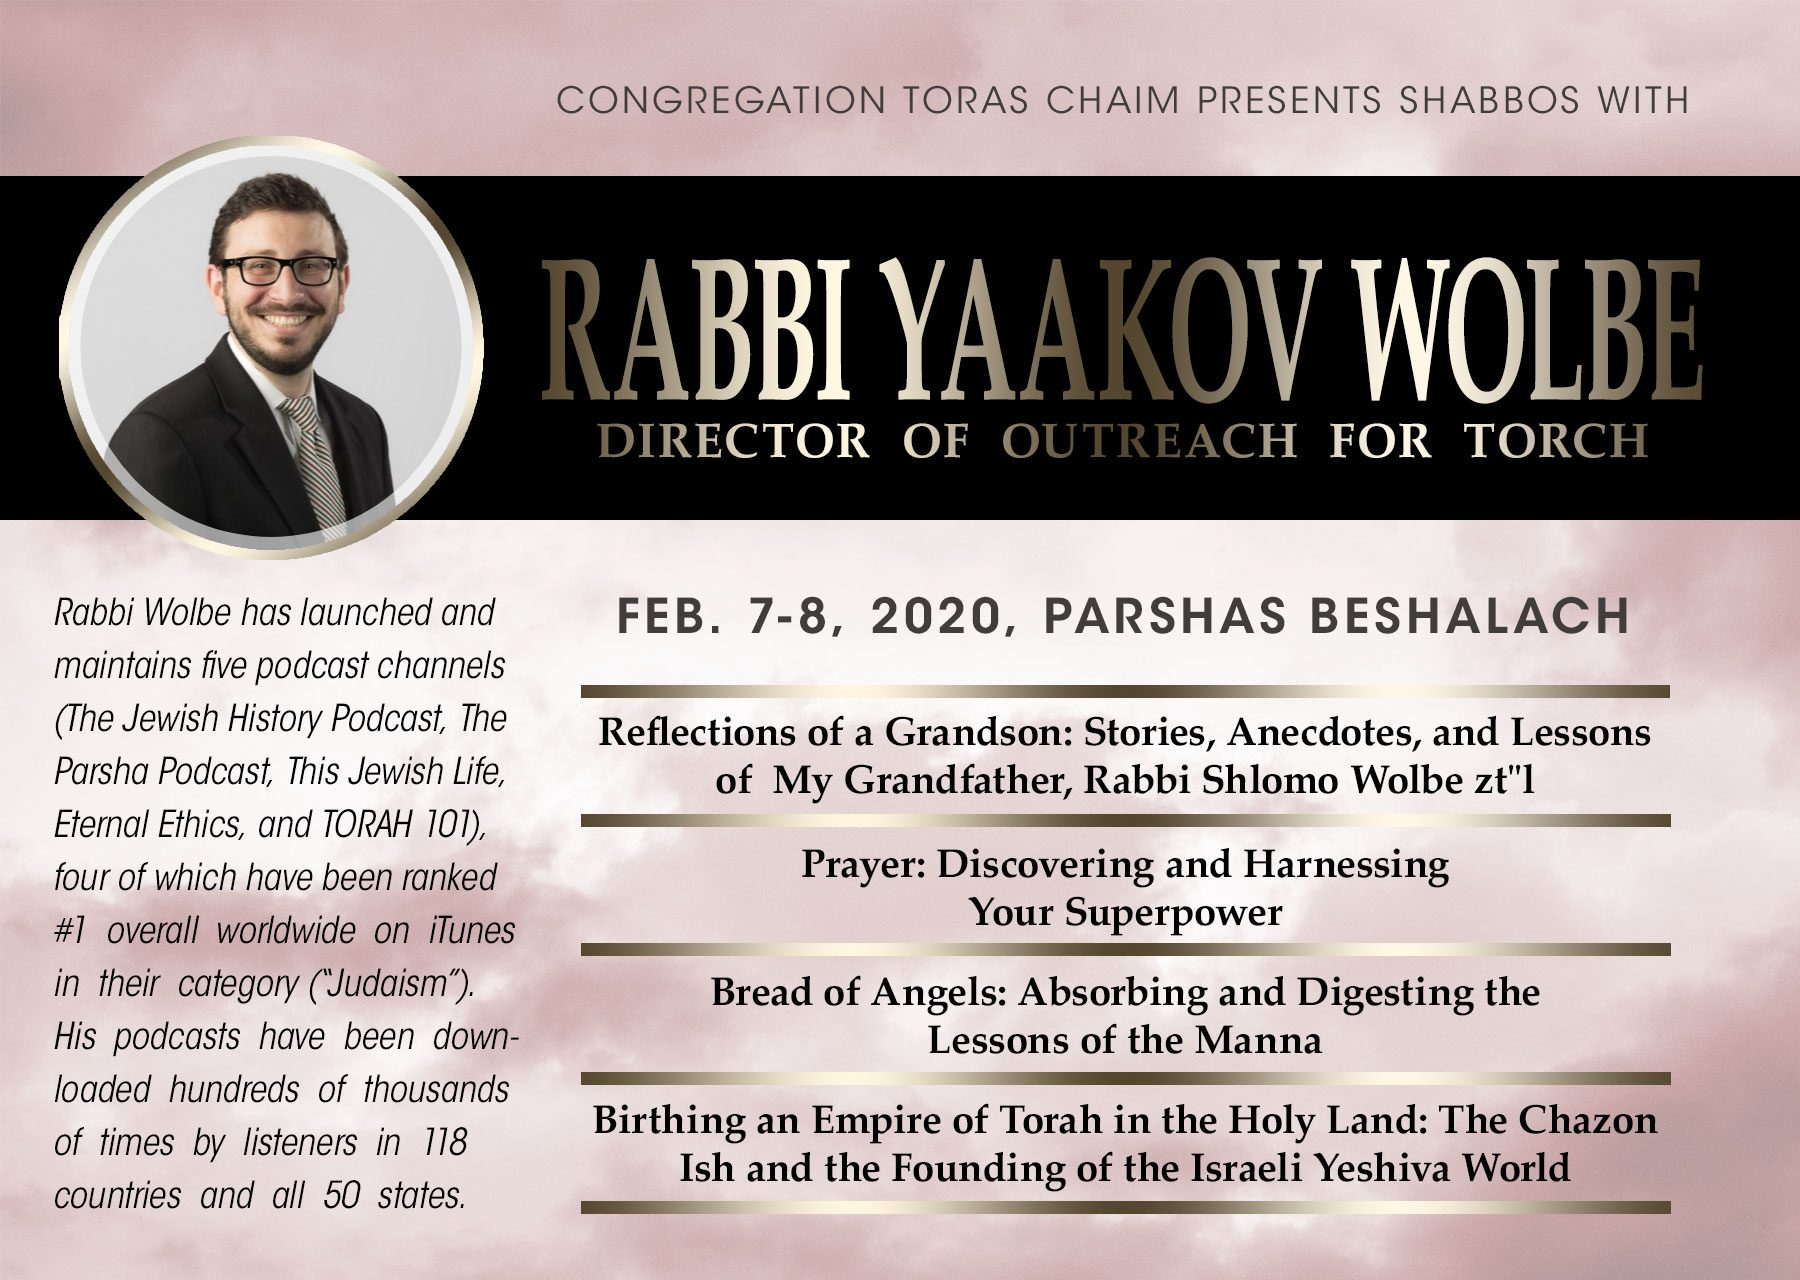 A Shabbos with Rabbi Yaakov Wolbe